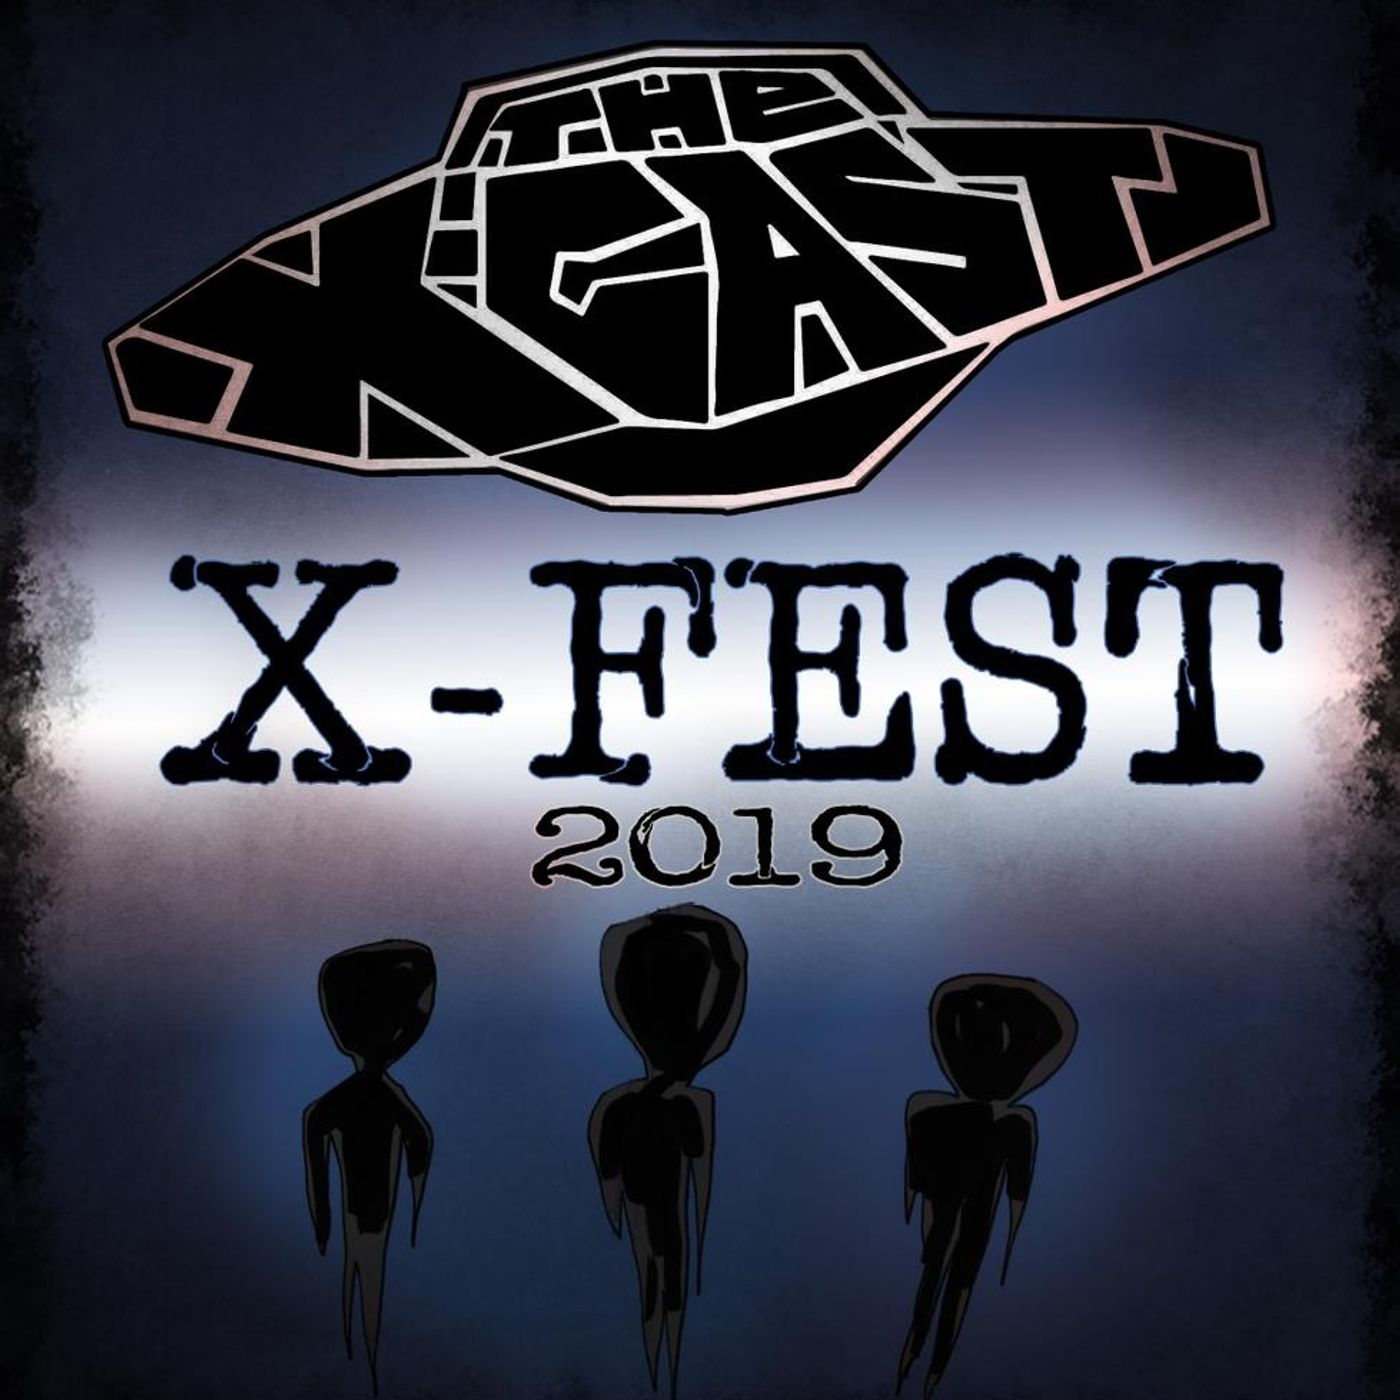 332. X-Fest 2019: The Breakdown